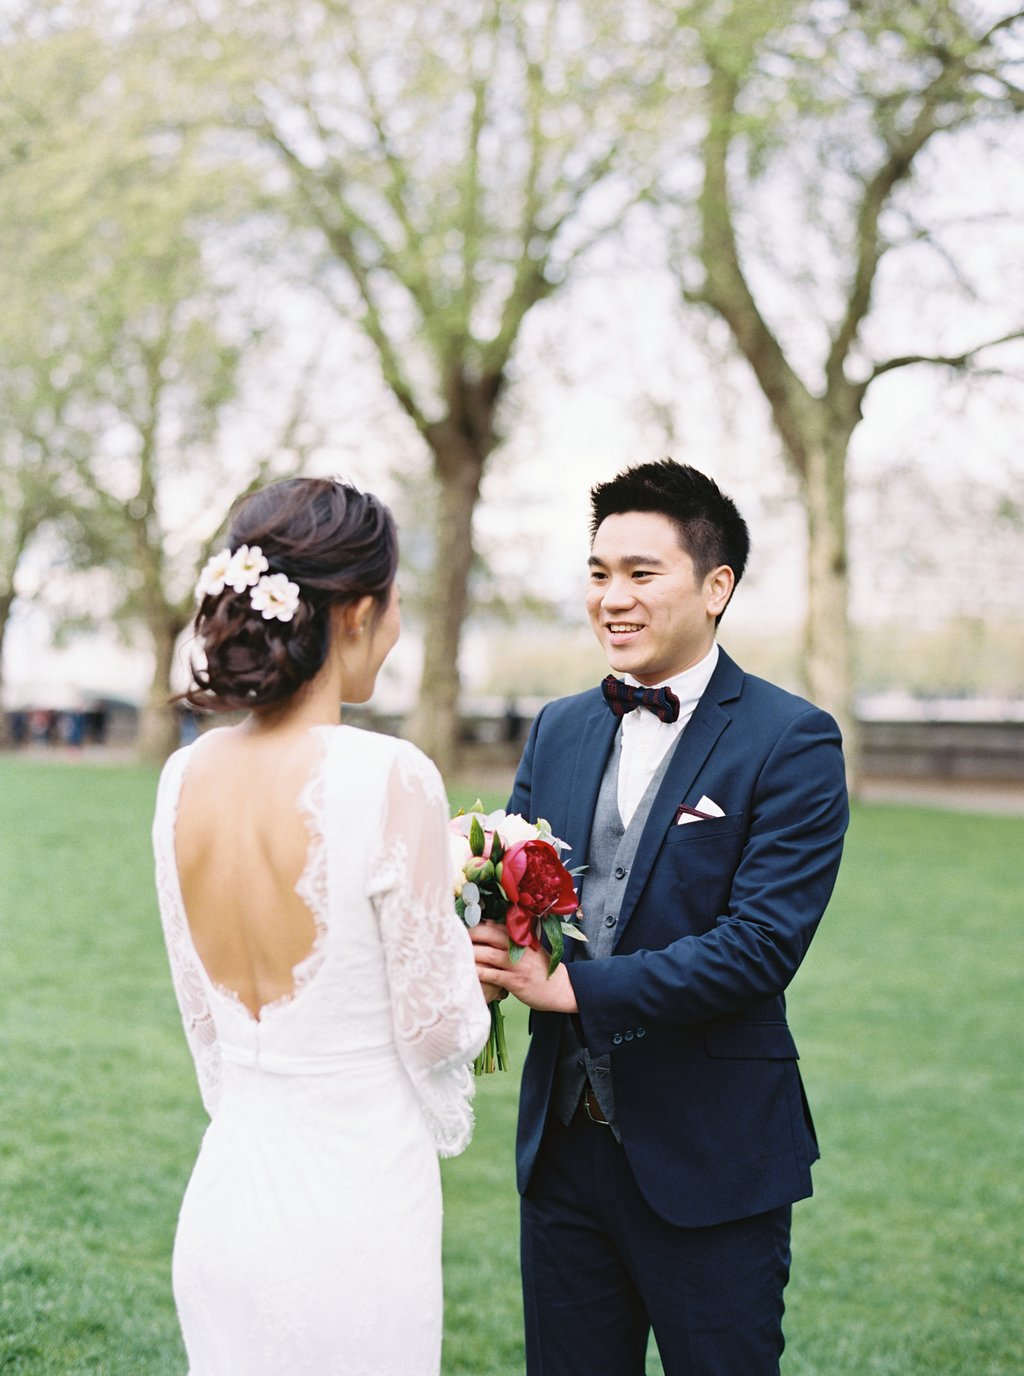 Oversea per wedding photography London Westminster House of Parliment couple